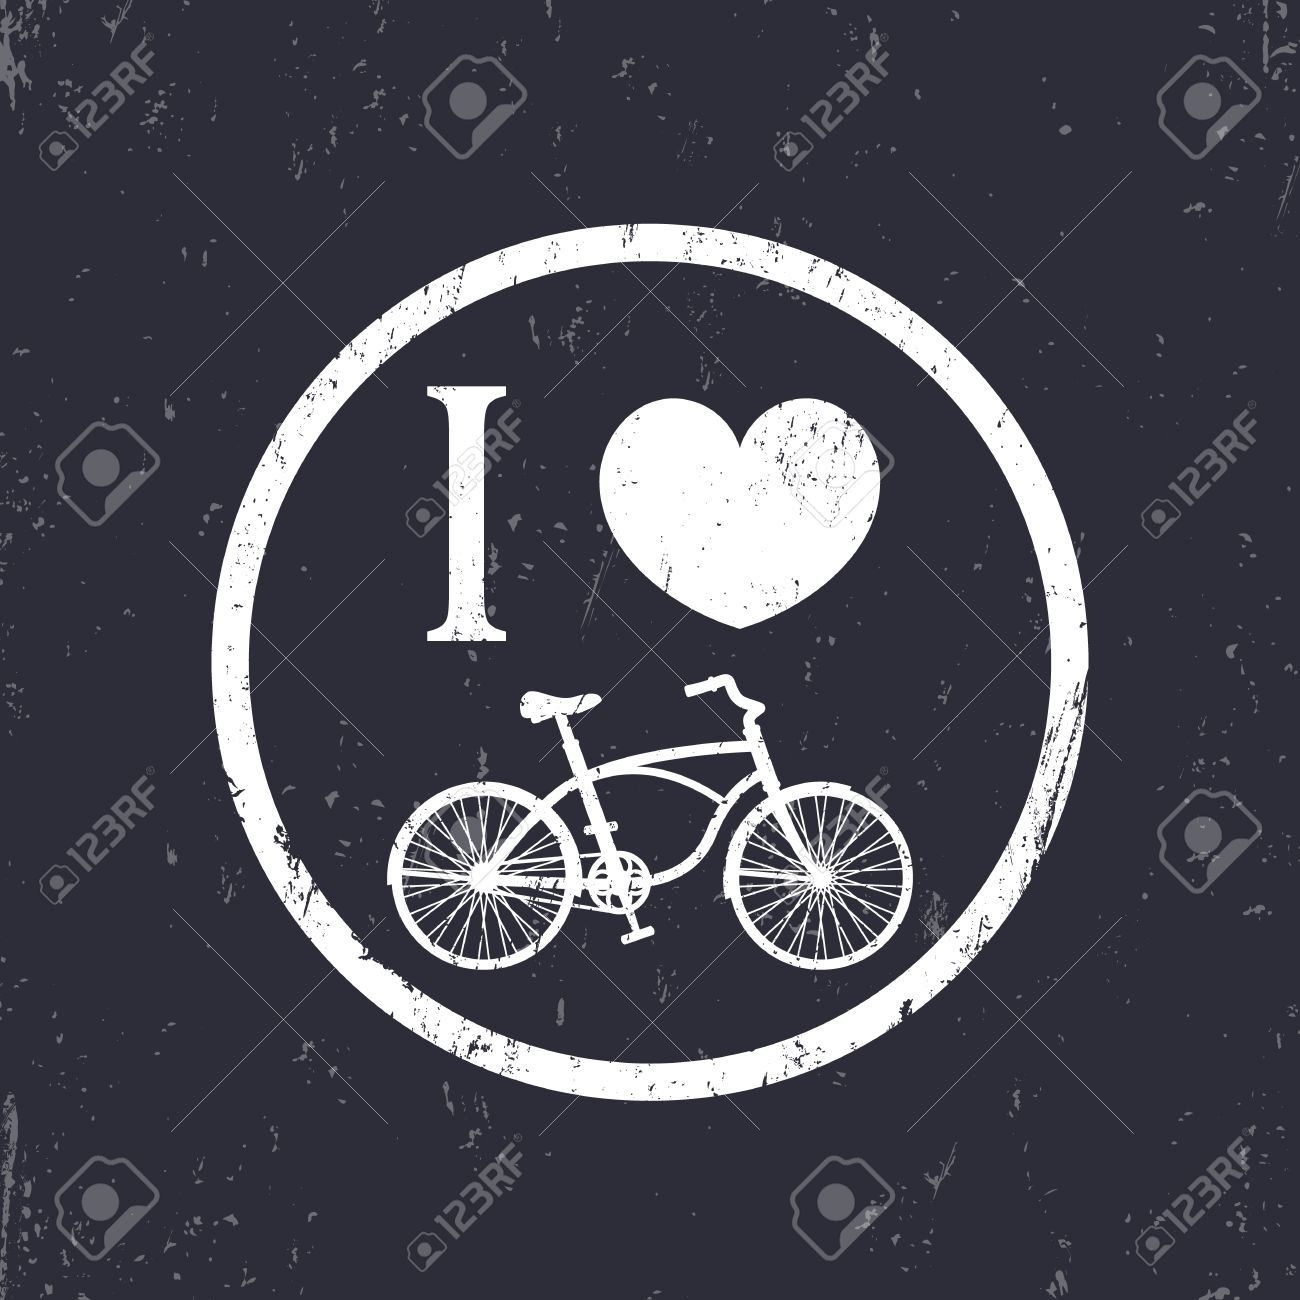 I Love Cycling Round Sign With Vintage Bike Illustration Royalty